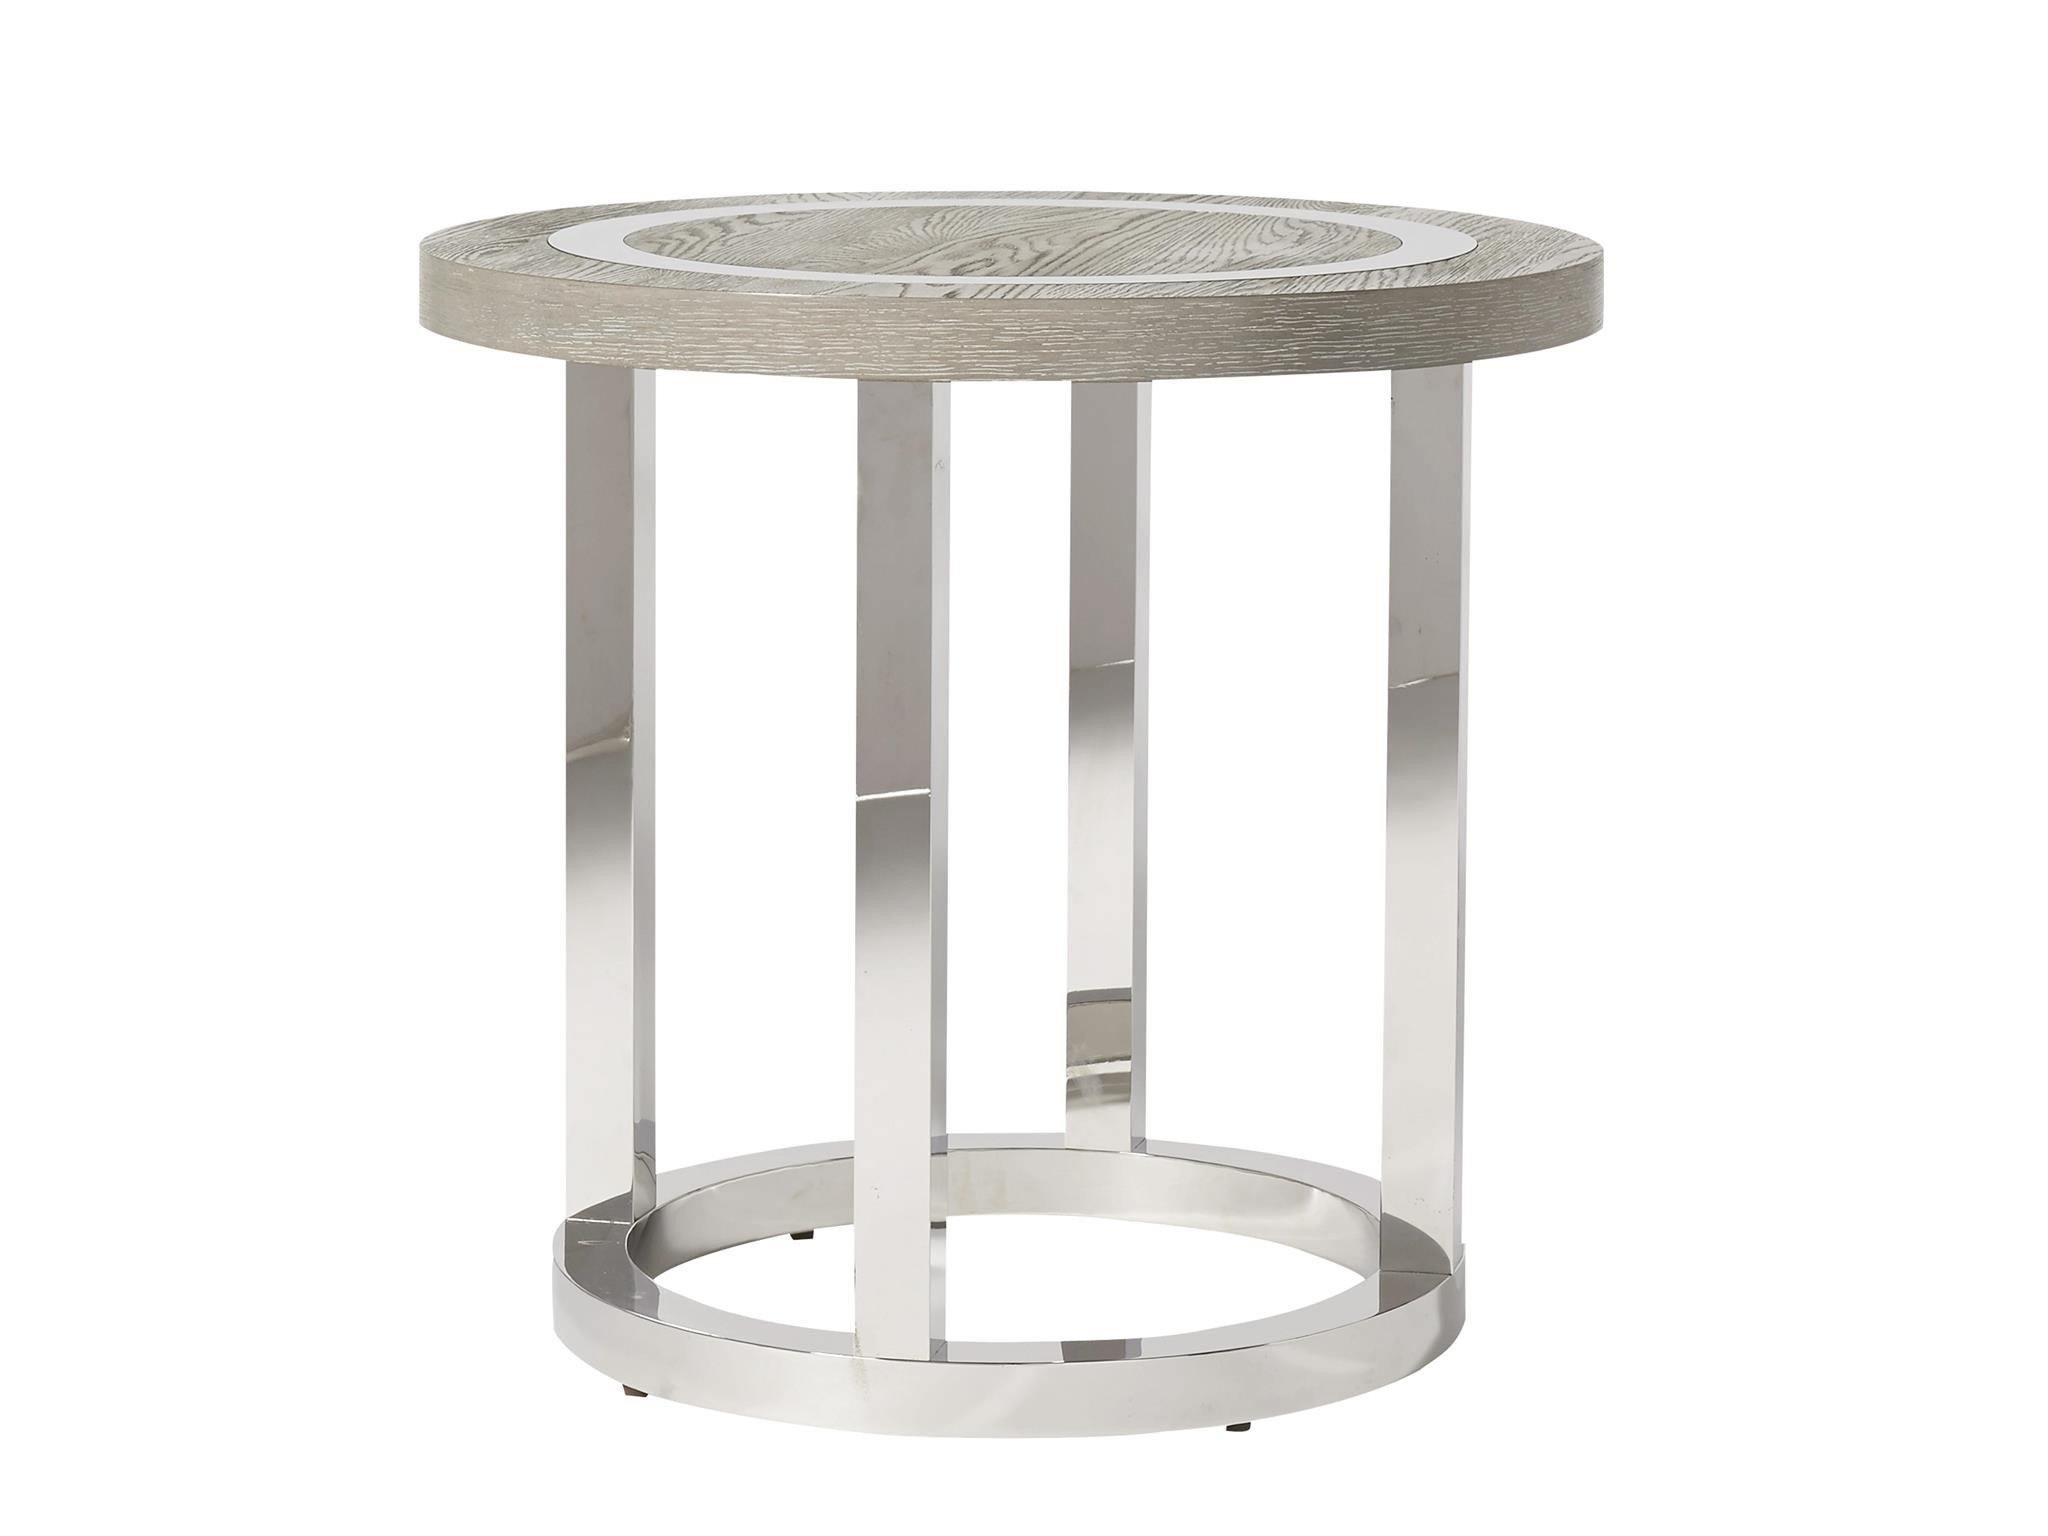 Wyatt Round End Table - MJM Furniture